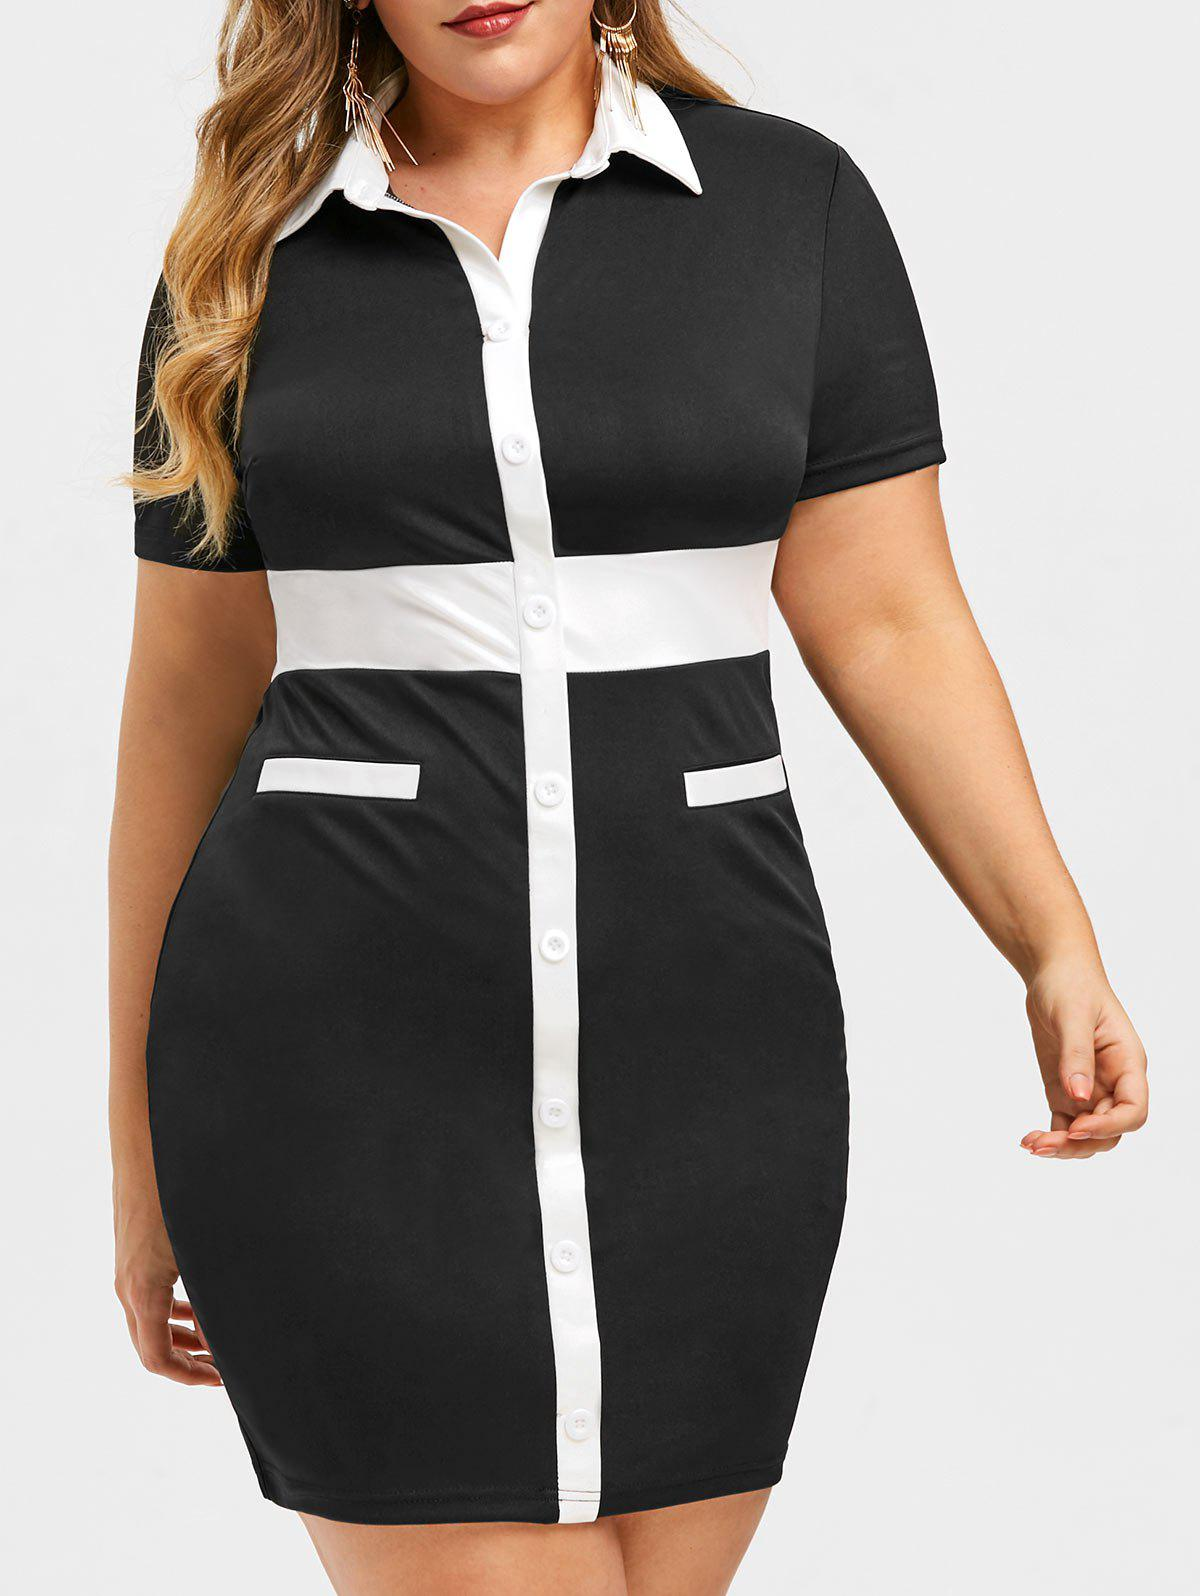 Fashion Rosegal Two Tone Plus Size Fitted Work Dress